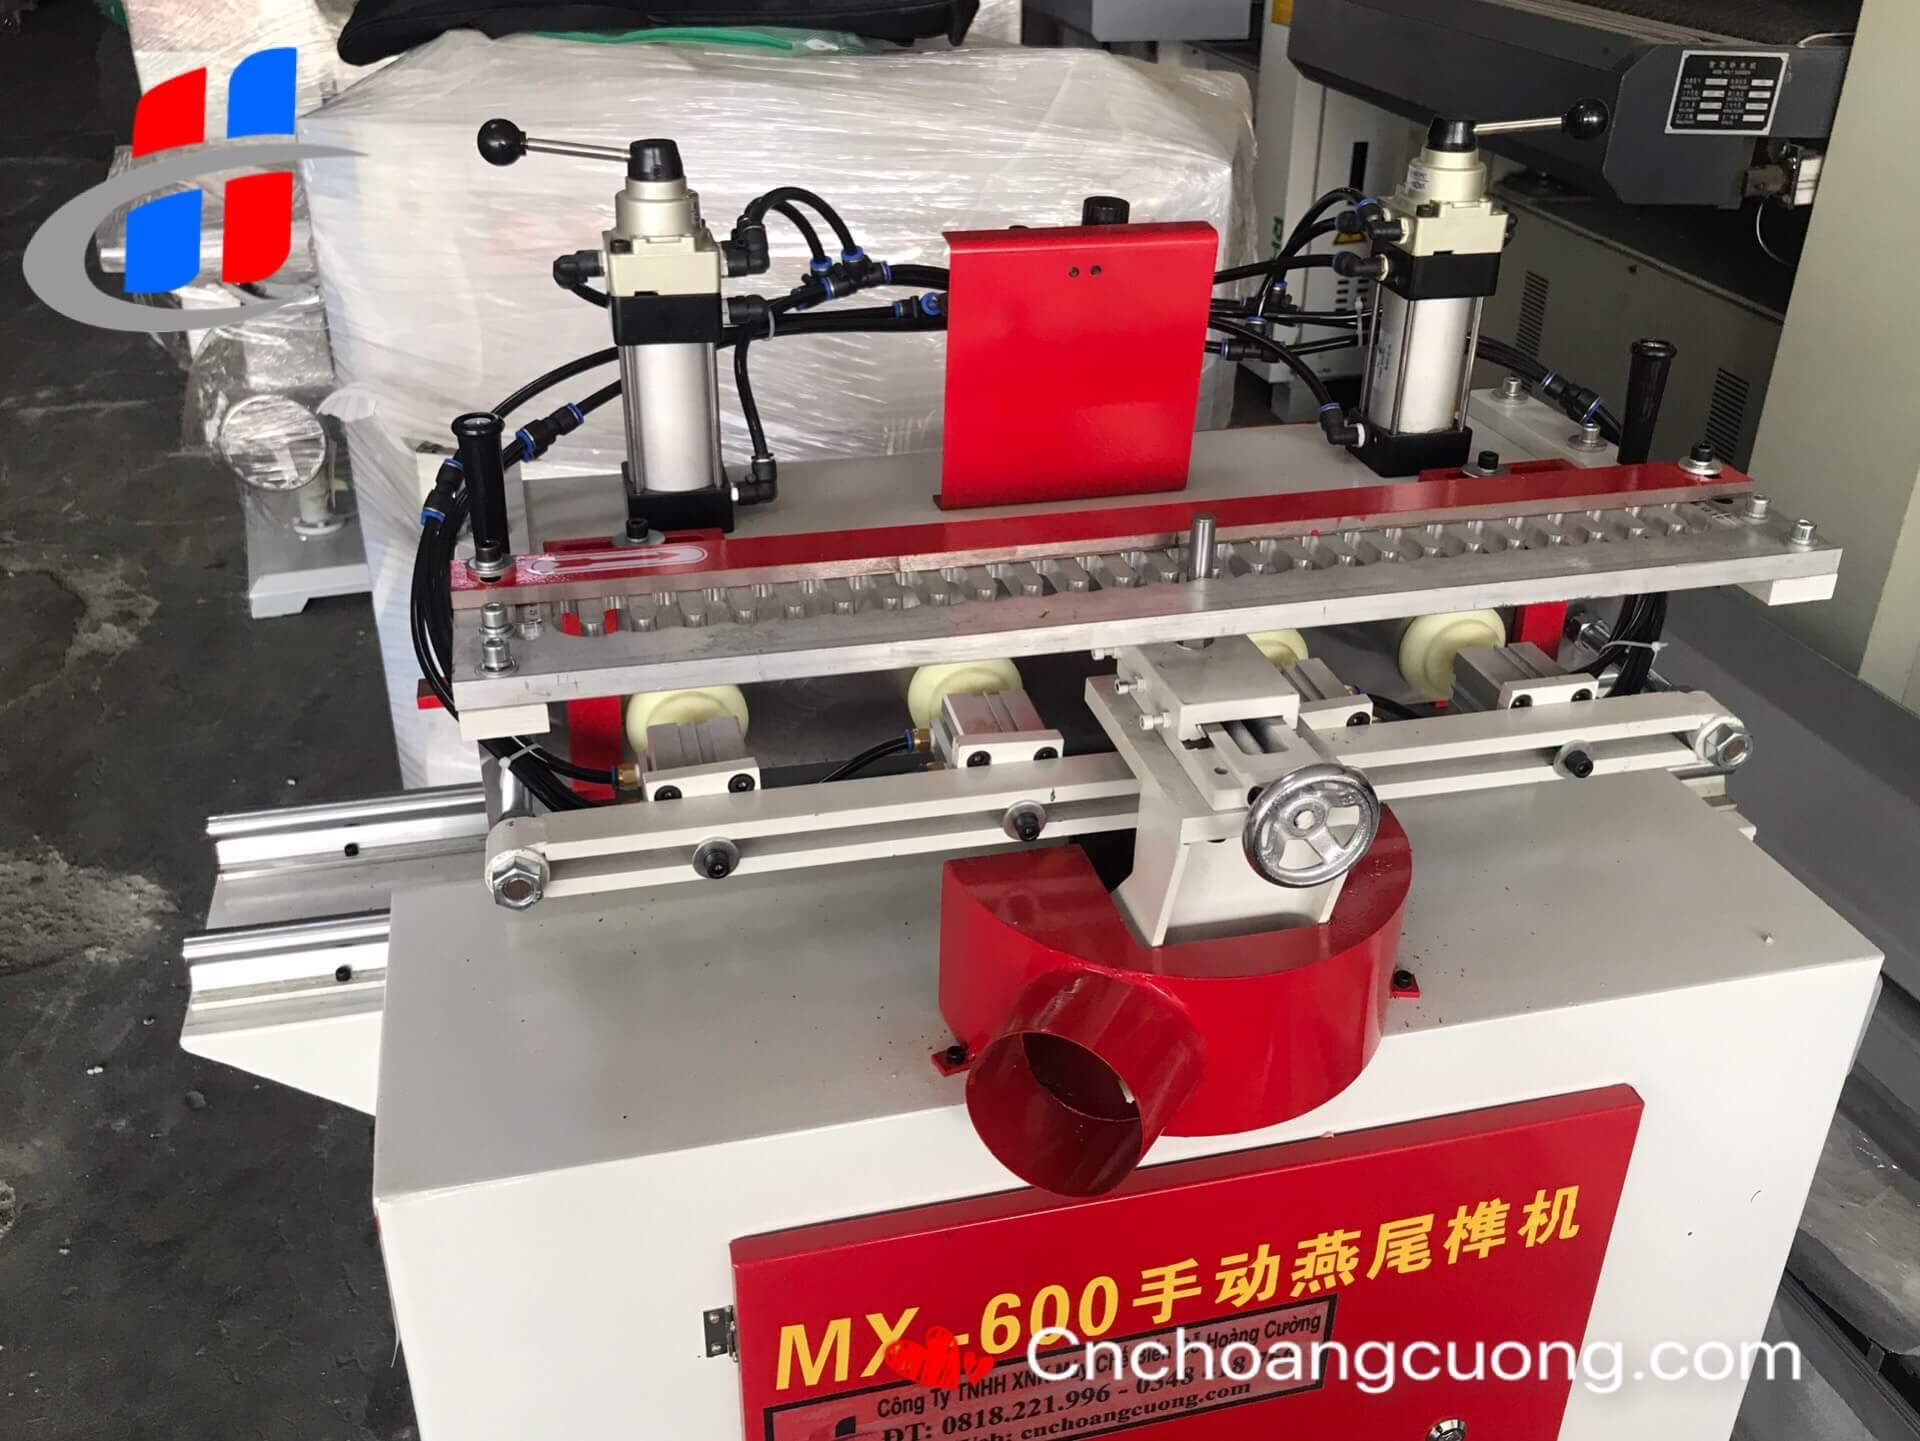 https://cnchoangcuong.com/?post_type=product&p=2076&preview=true